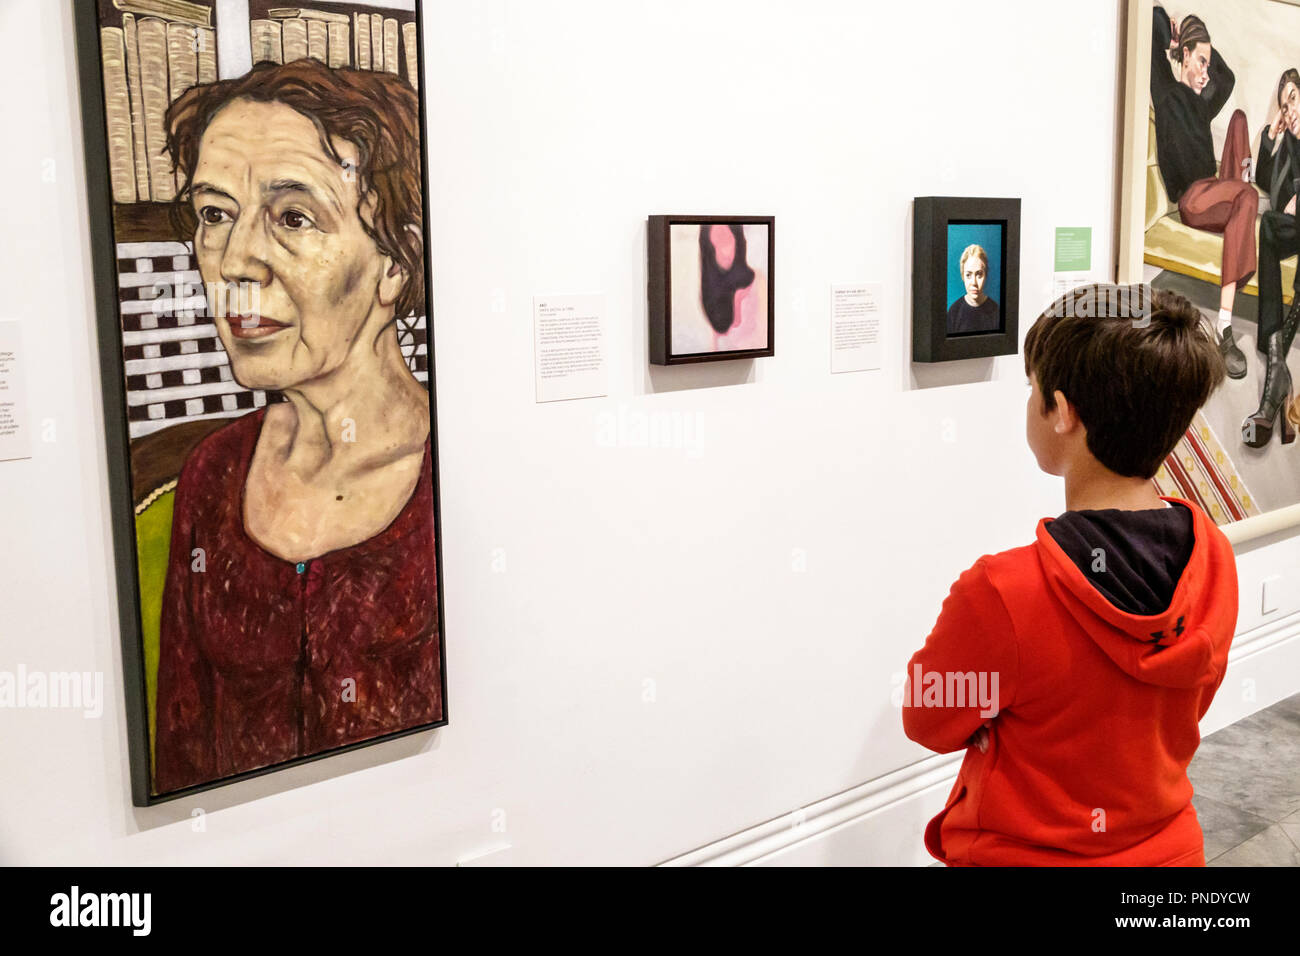 London England Great Britain United Kingdom Covent Garden National PortraitGallery art museum interior BP Portrait Award exhibition painting Claire To - Stock Image